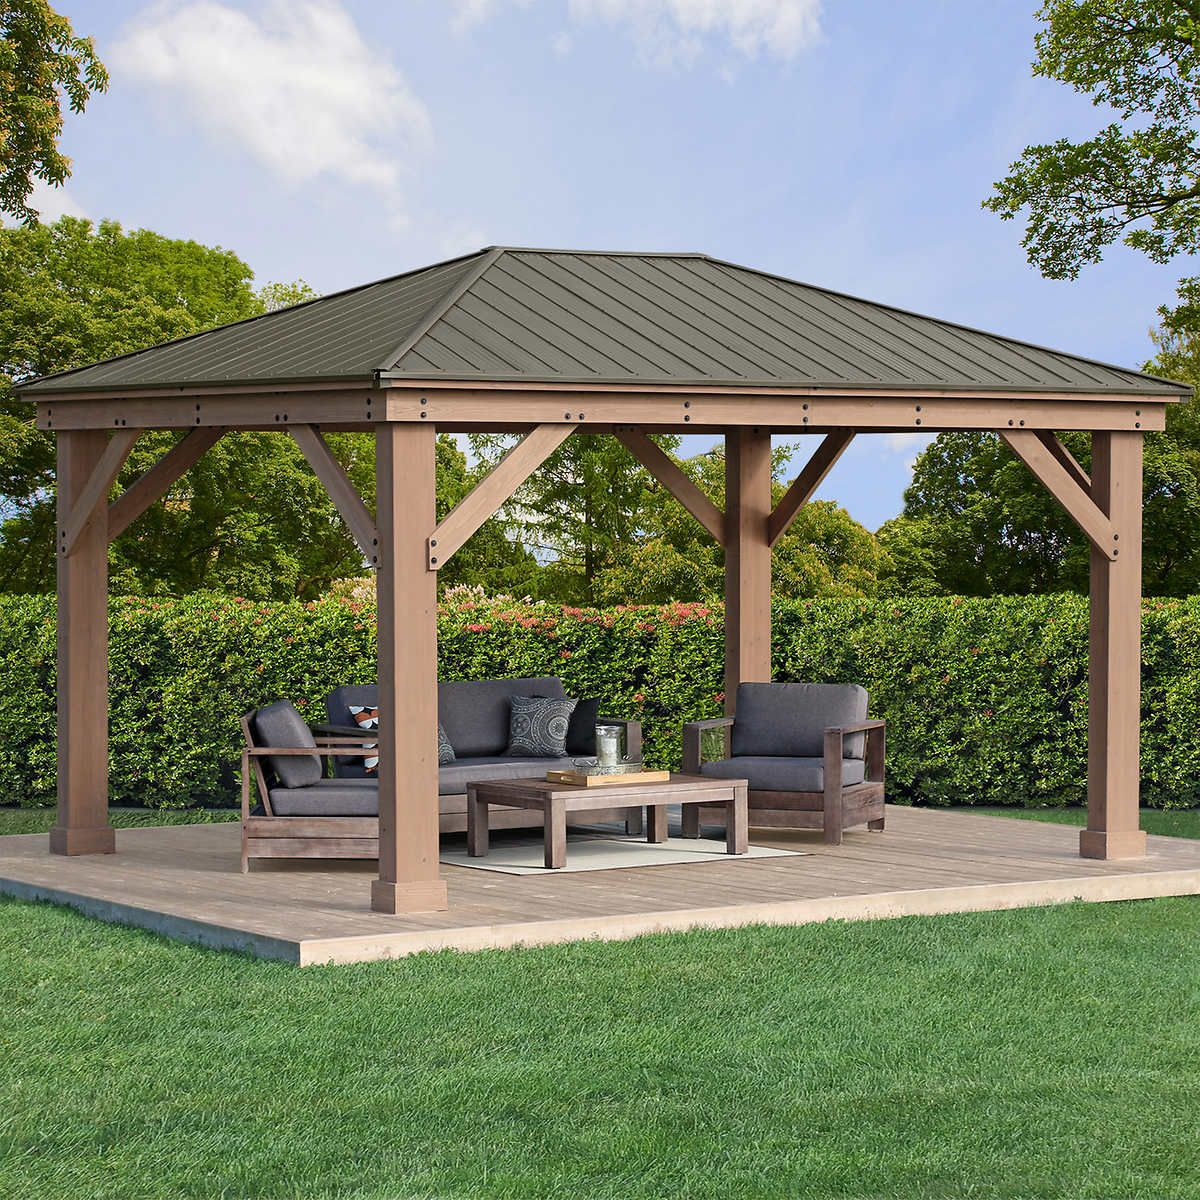 12 X 16 Cedar Gazebo With Aluminum Roof Patio Gazebo Backyard Gazebo Pergola Plans